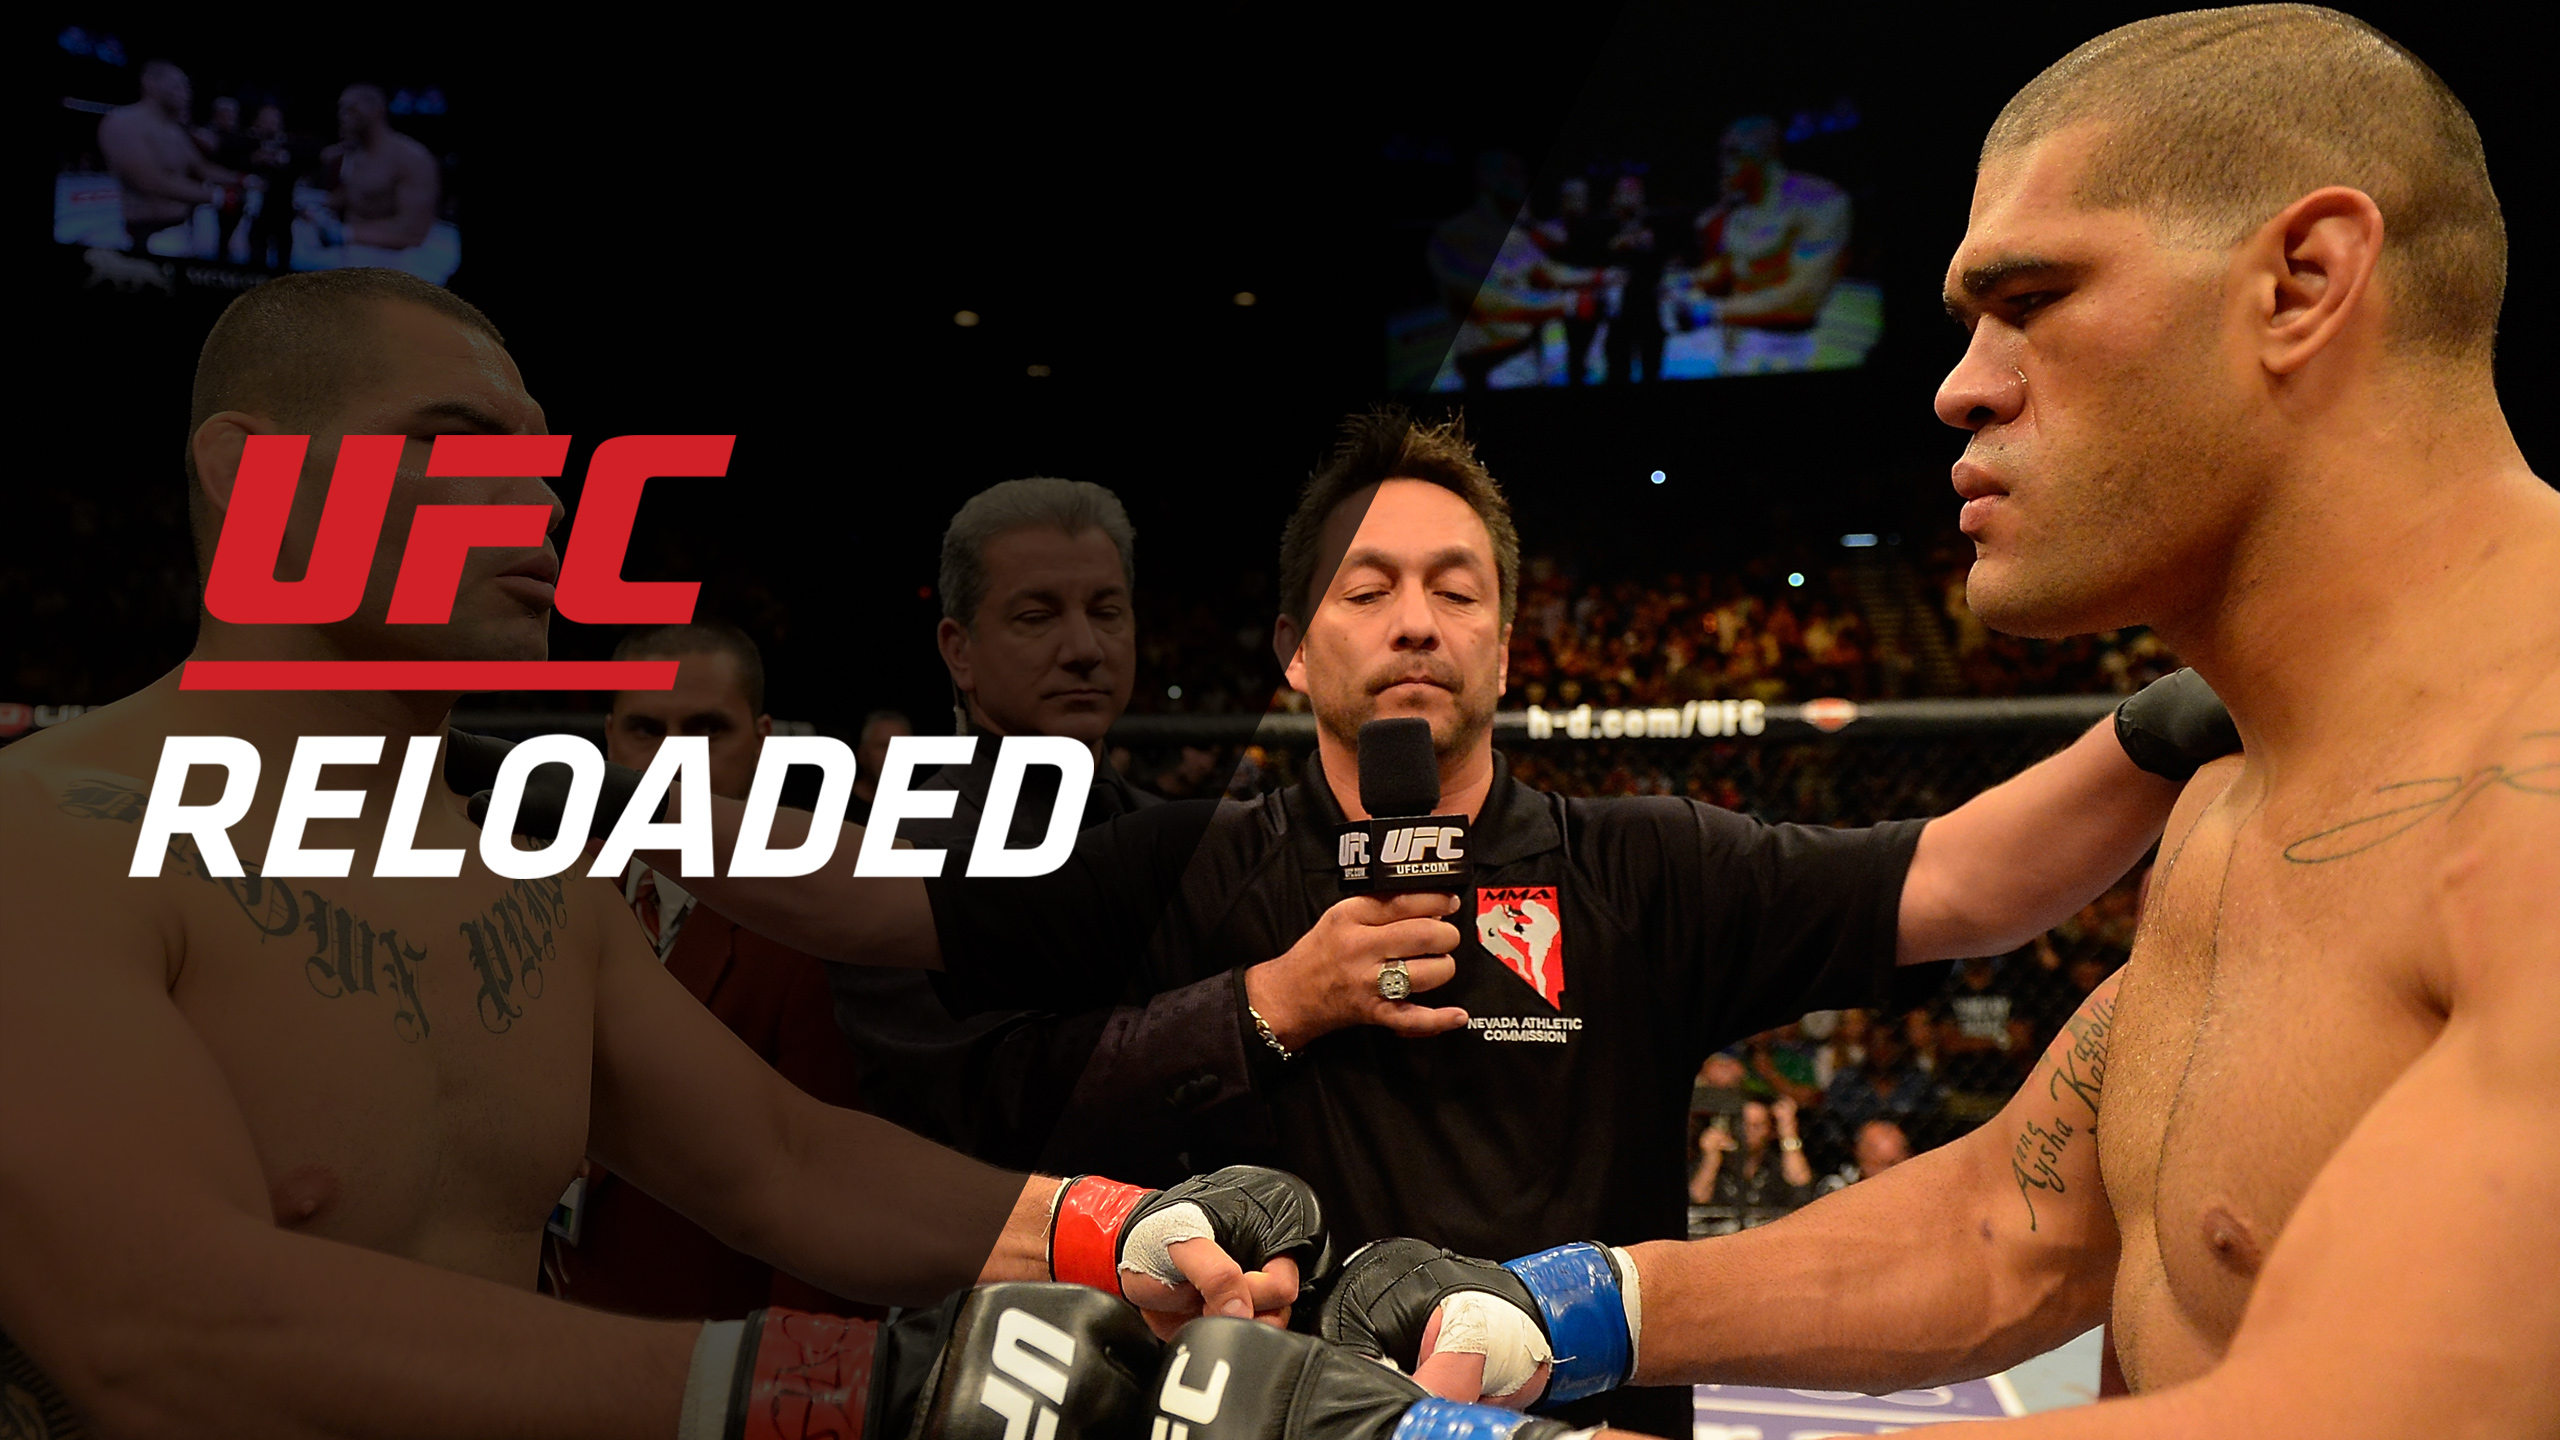 UFC Reloaded: 160: Velasquez vs. Bigfoot 2